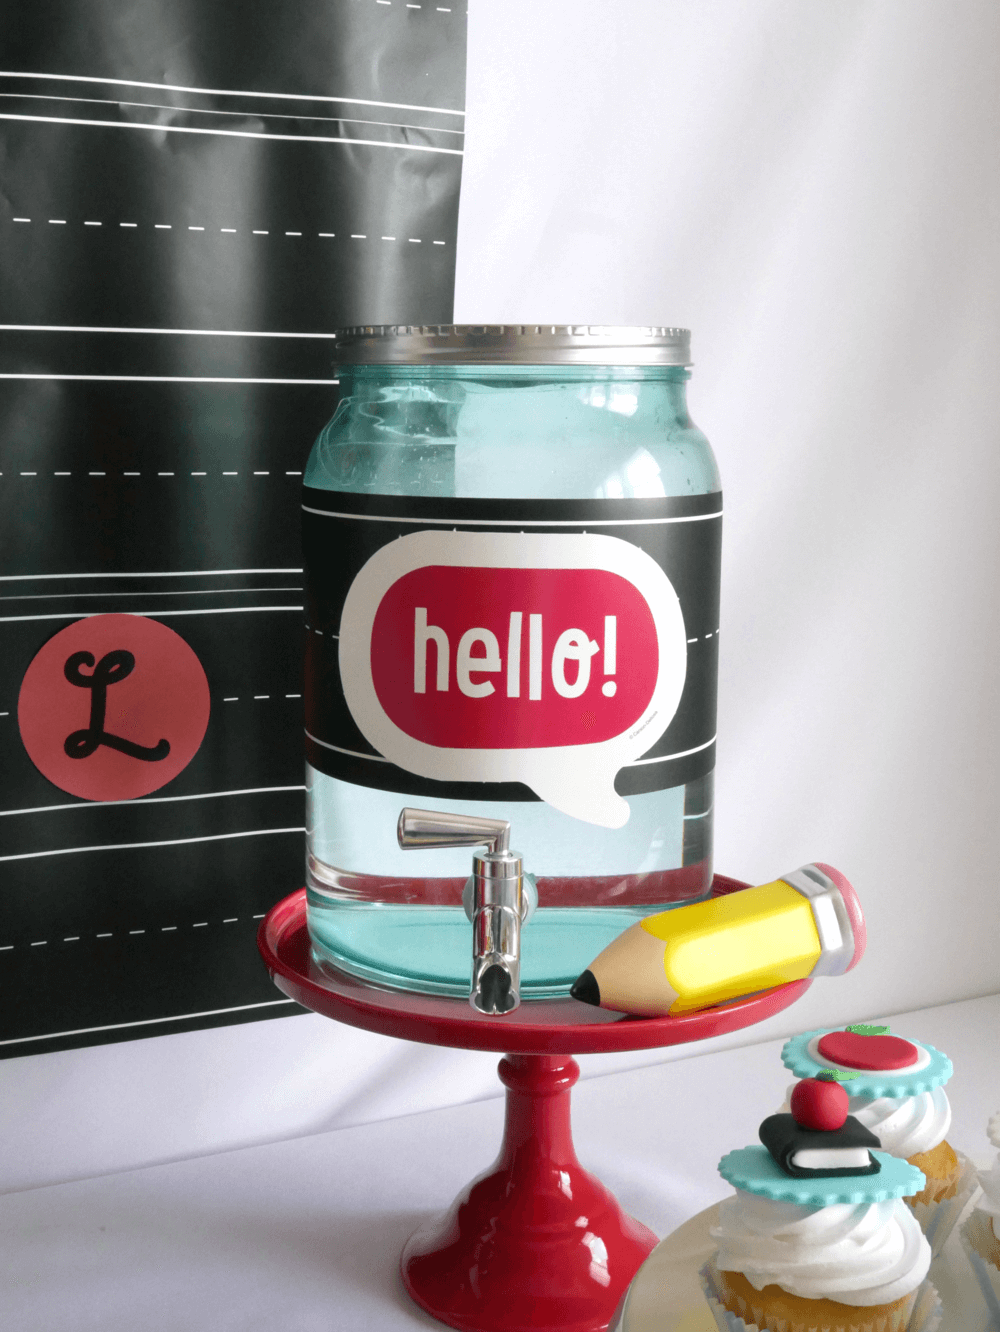 Loving this decoration details - a mason Jar themed beverage dispenser at a back to school party with a chalkboard tag and cute pencil decorations. See all the party details on Mint Event Design www.minteventdesign.com #backtoschool #backtoschoolideas #kidsparty #kidspartyideas #kidsparties #partydrinks